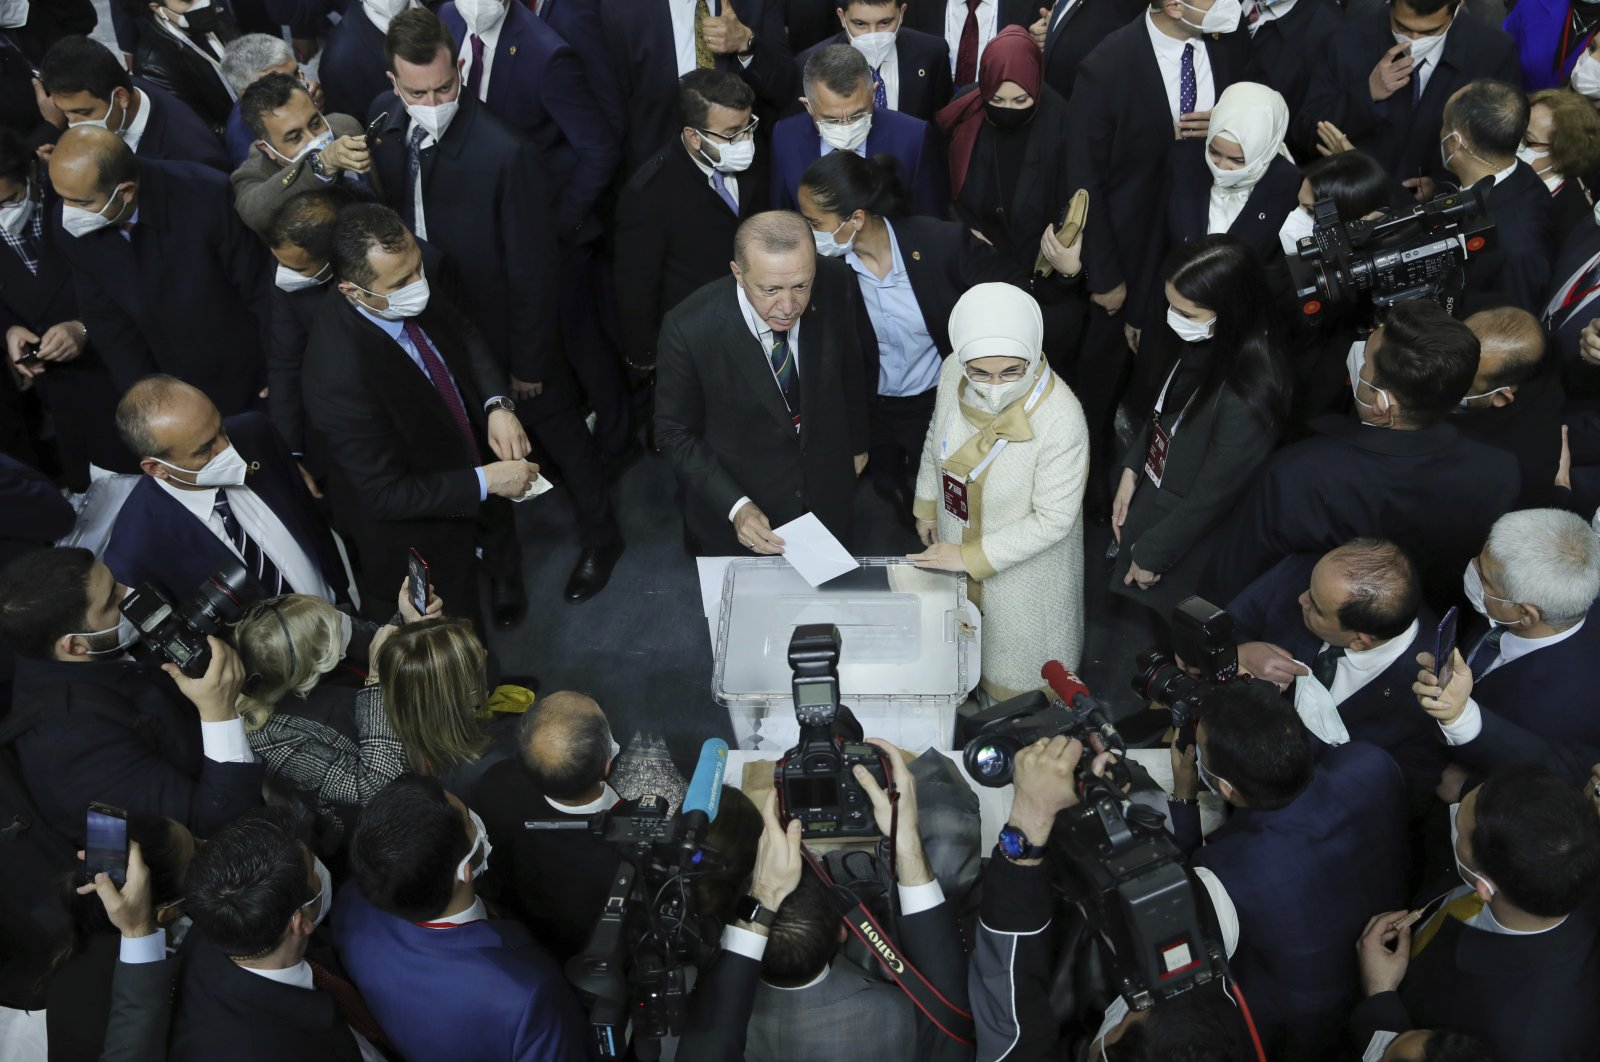 President Recep Tayyip Erdoğan (C-L) accompanied by first lady Emine Erdoğan (C-R) votes at a rally of his ruling party's congress inside a packed sports hall in Ankara, Turkey, March 24, 2021. (AP Photo)